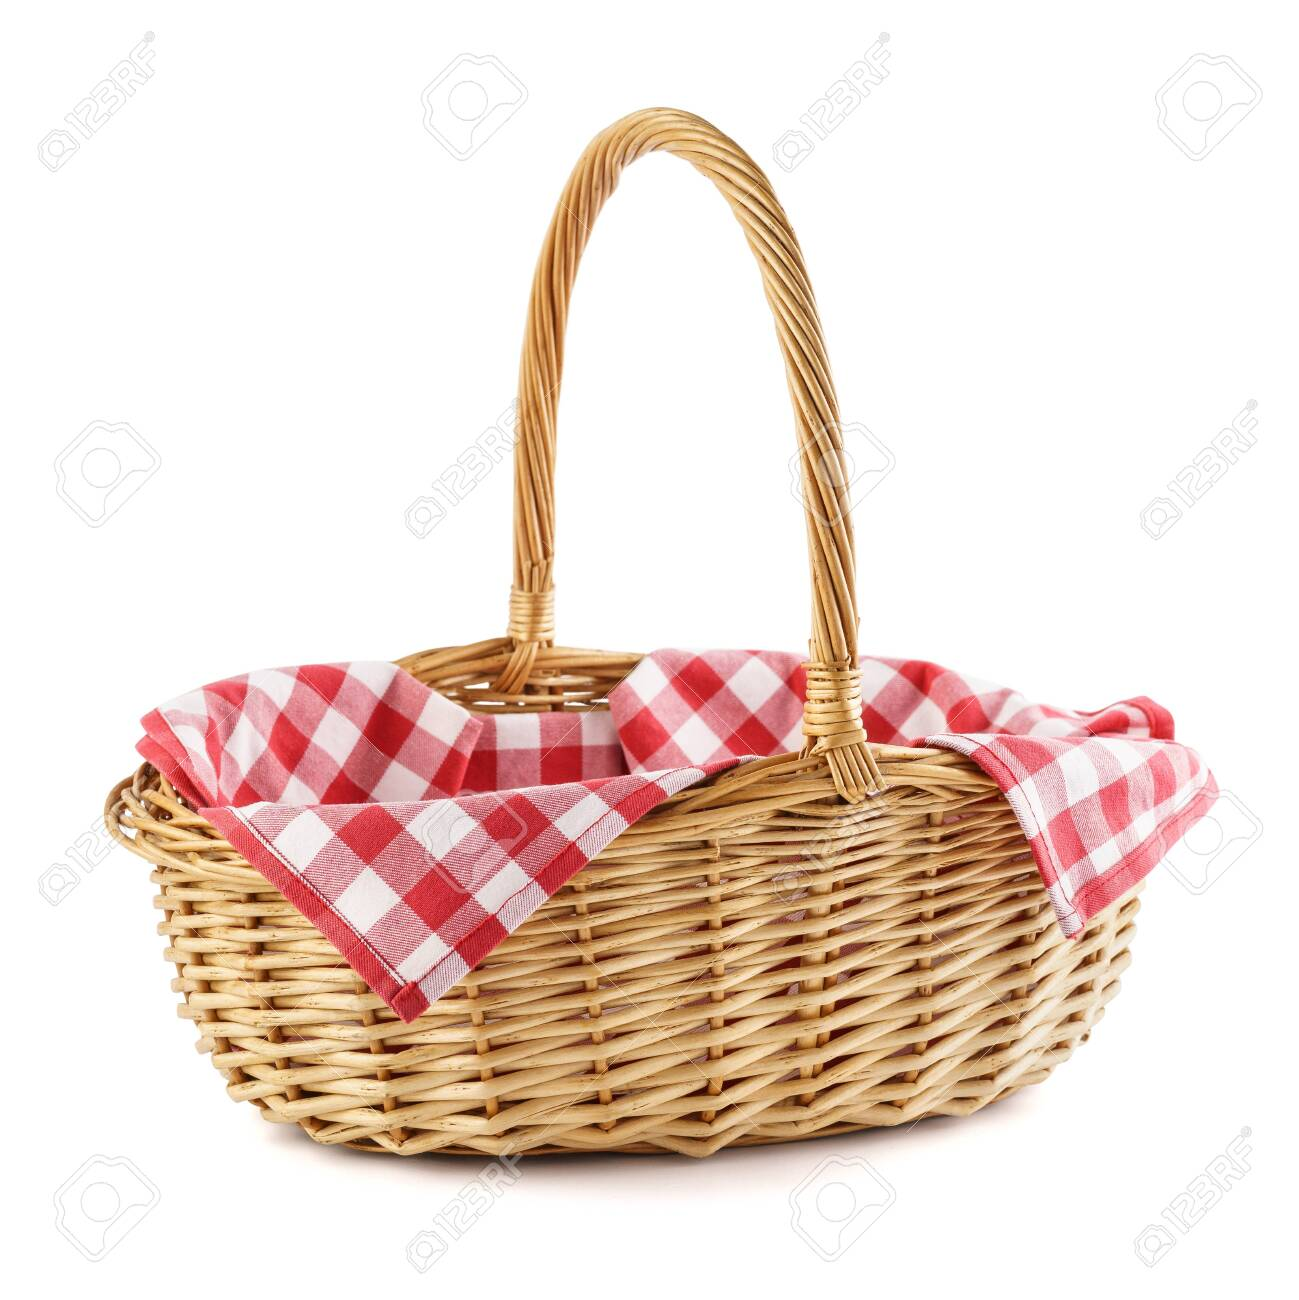 Empty wicker basket with red checkered tablecloth for picnic. Isolated on white. - 125566452